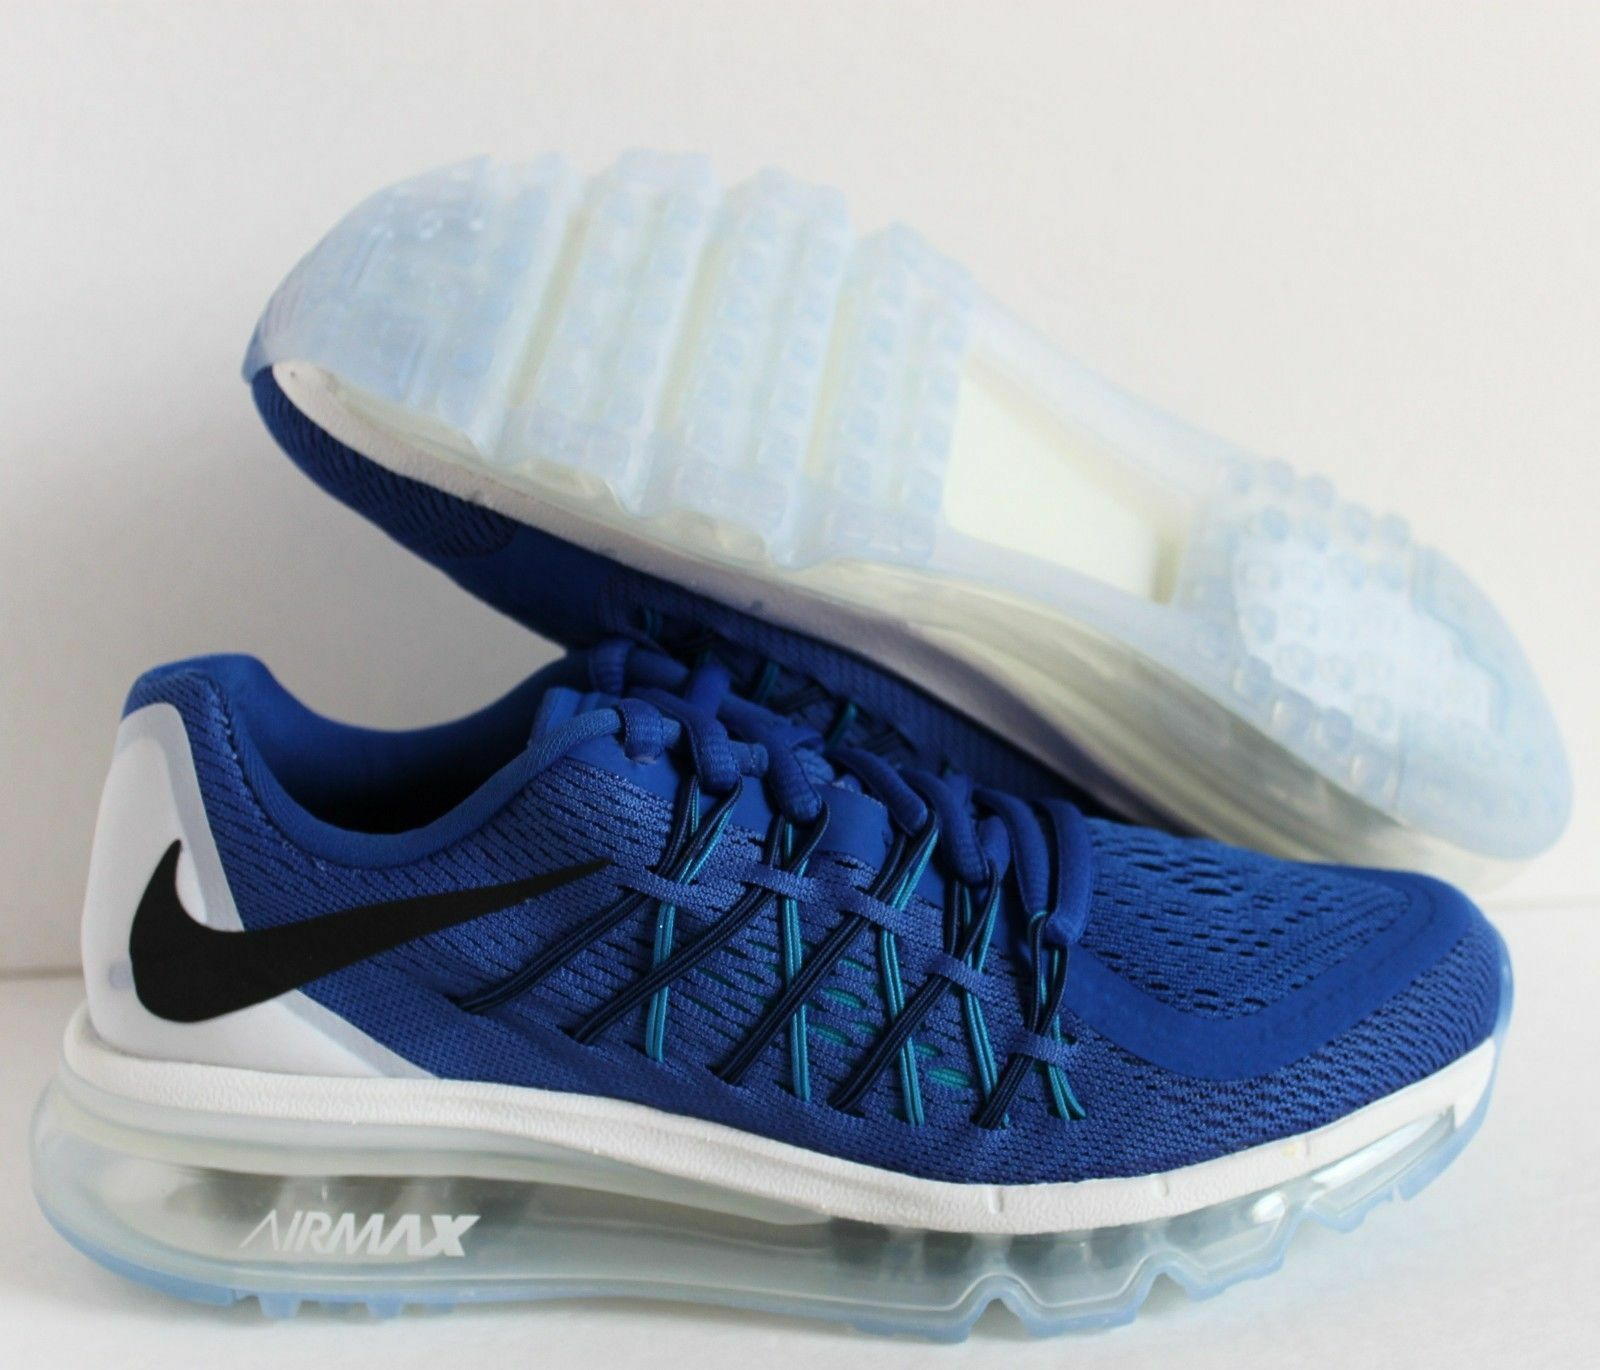 NIKE AIR MAX 2015 (GS) GAME ROYAL KÉK-FEHÉR SZ 6Y-WOMENS SZ 7.5 [705457-401]